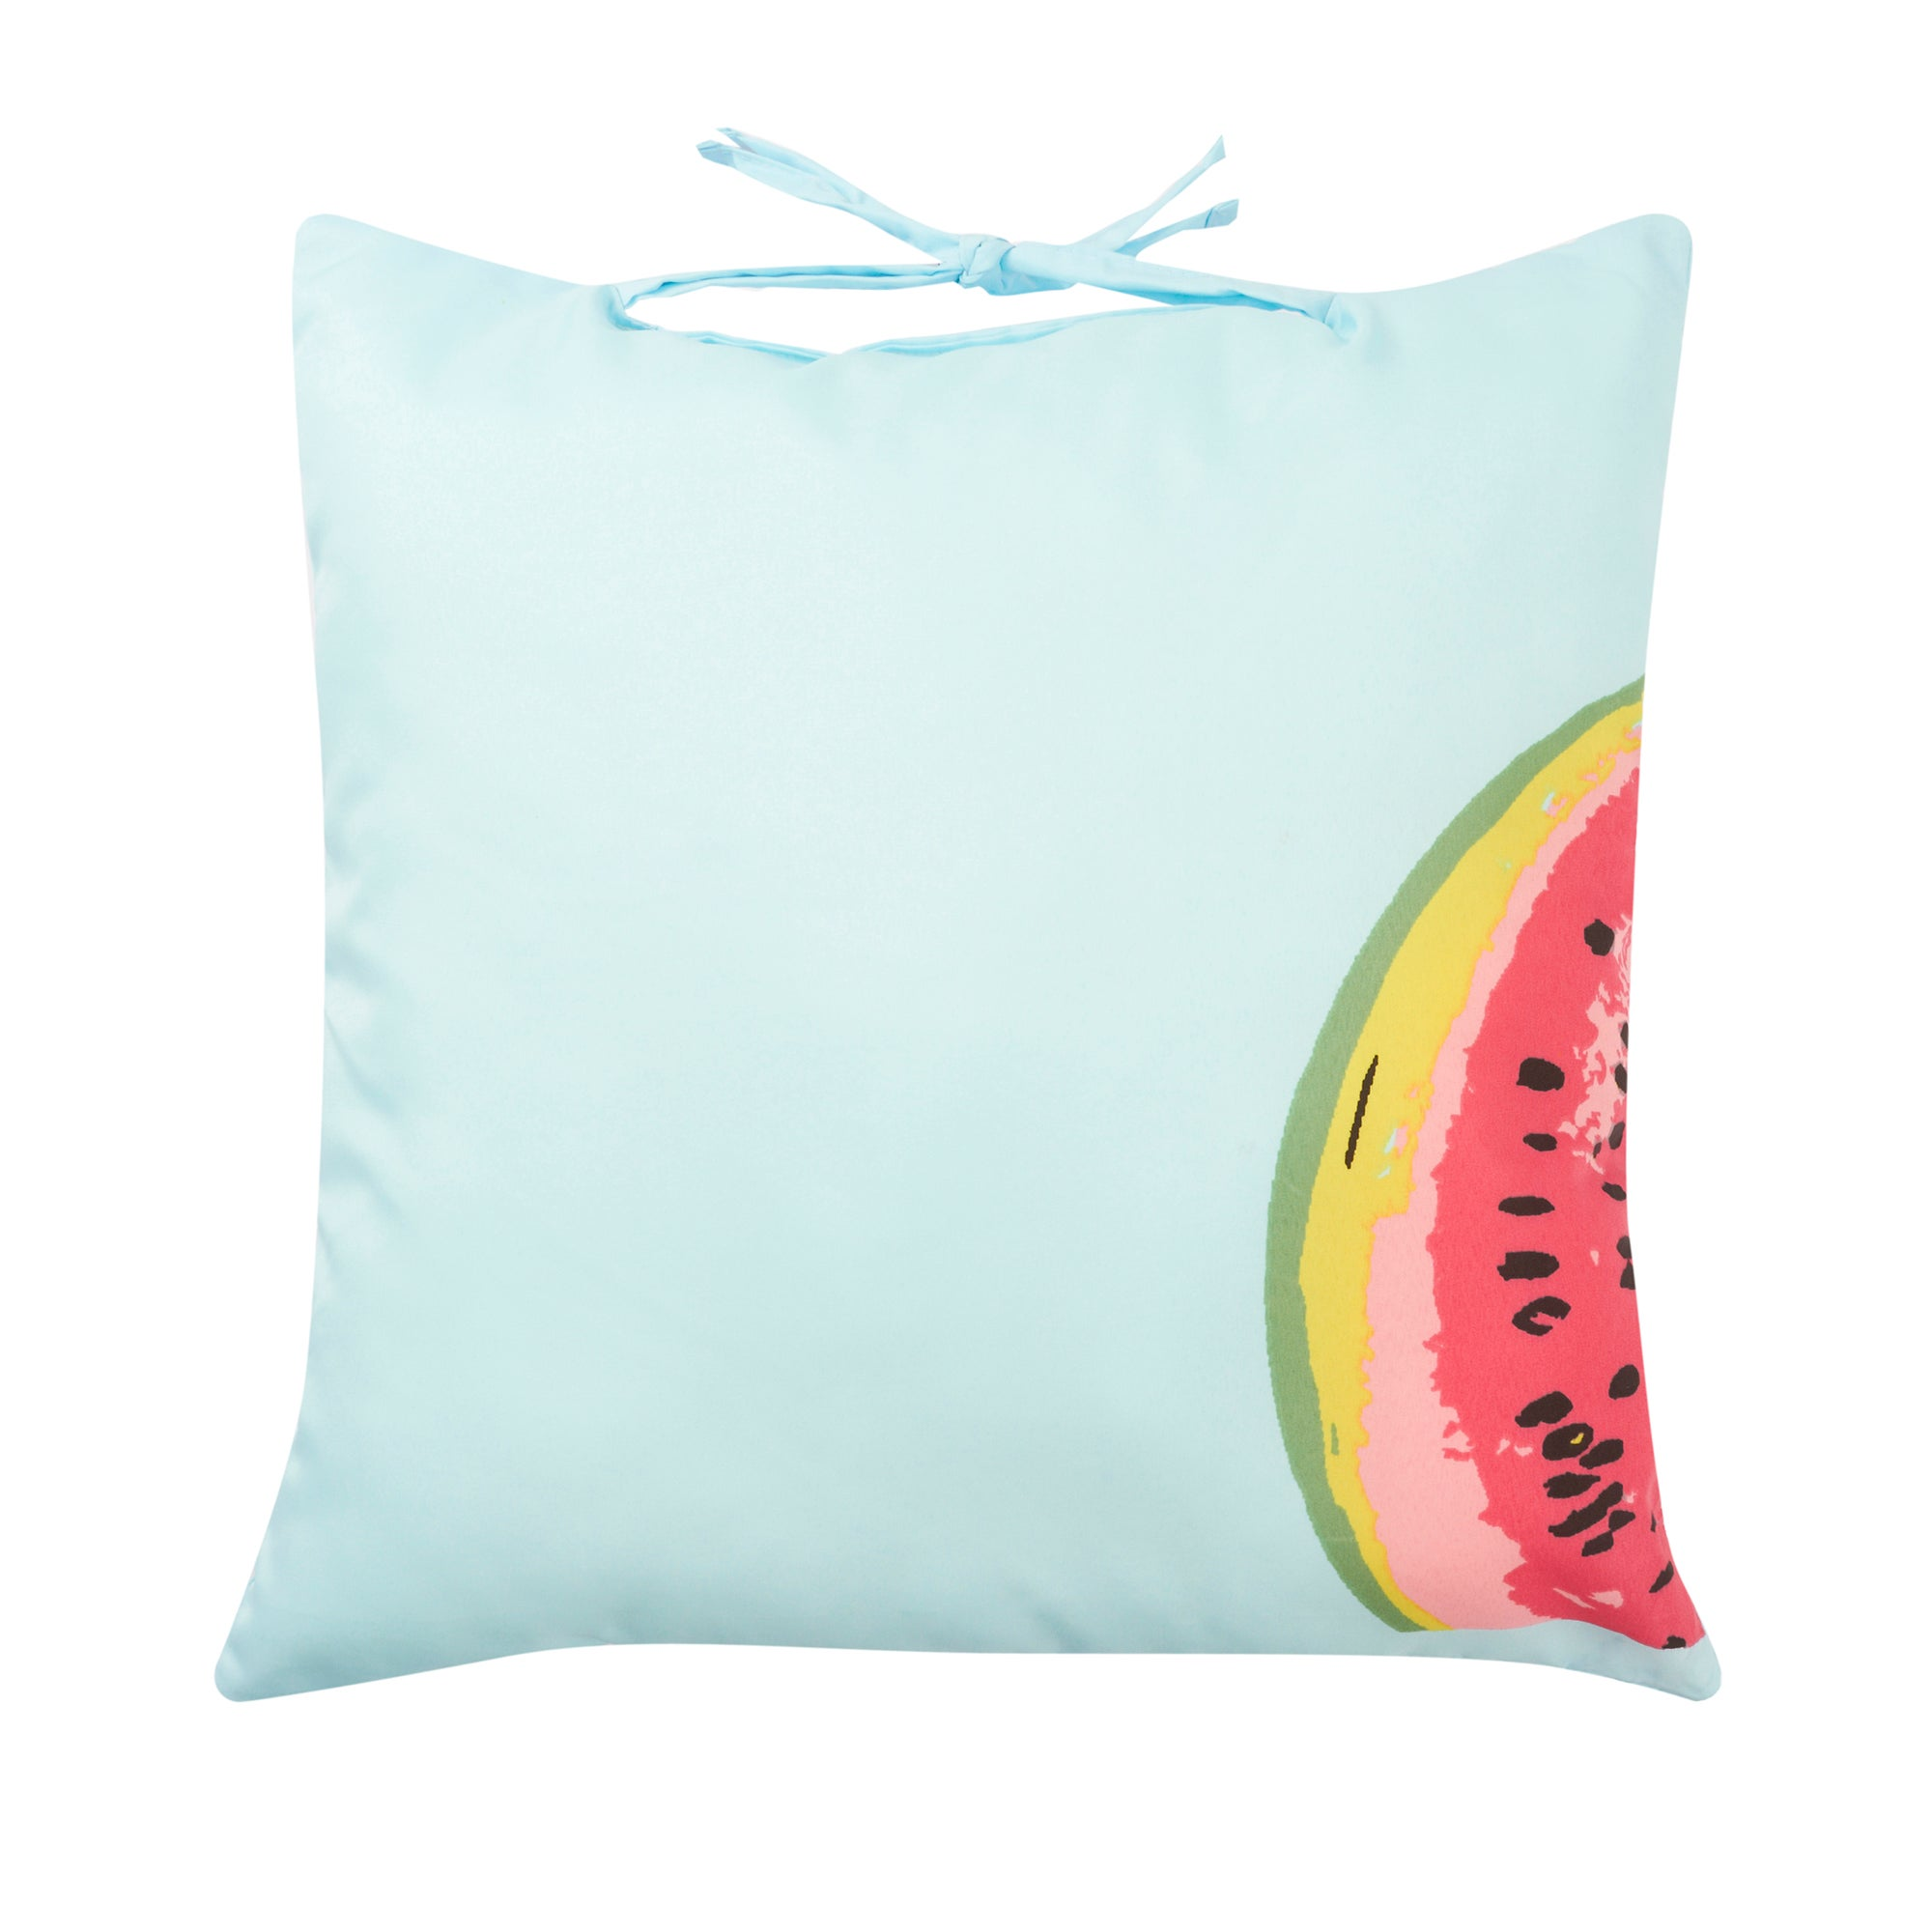 Watermelon Water Resistant Cushion Seat Pad